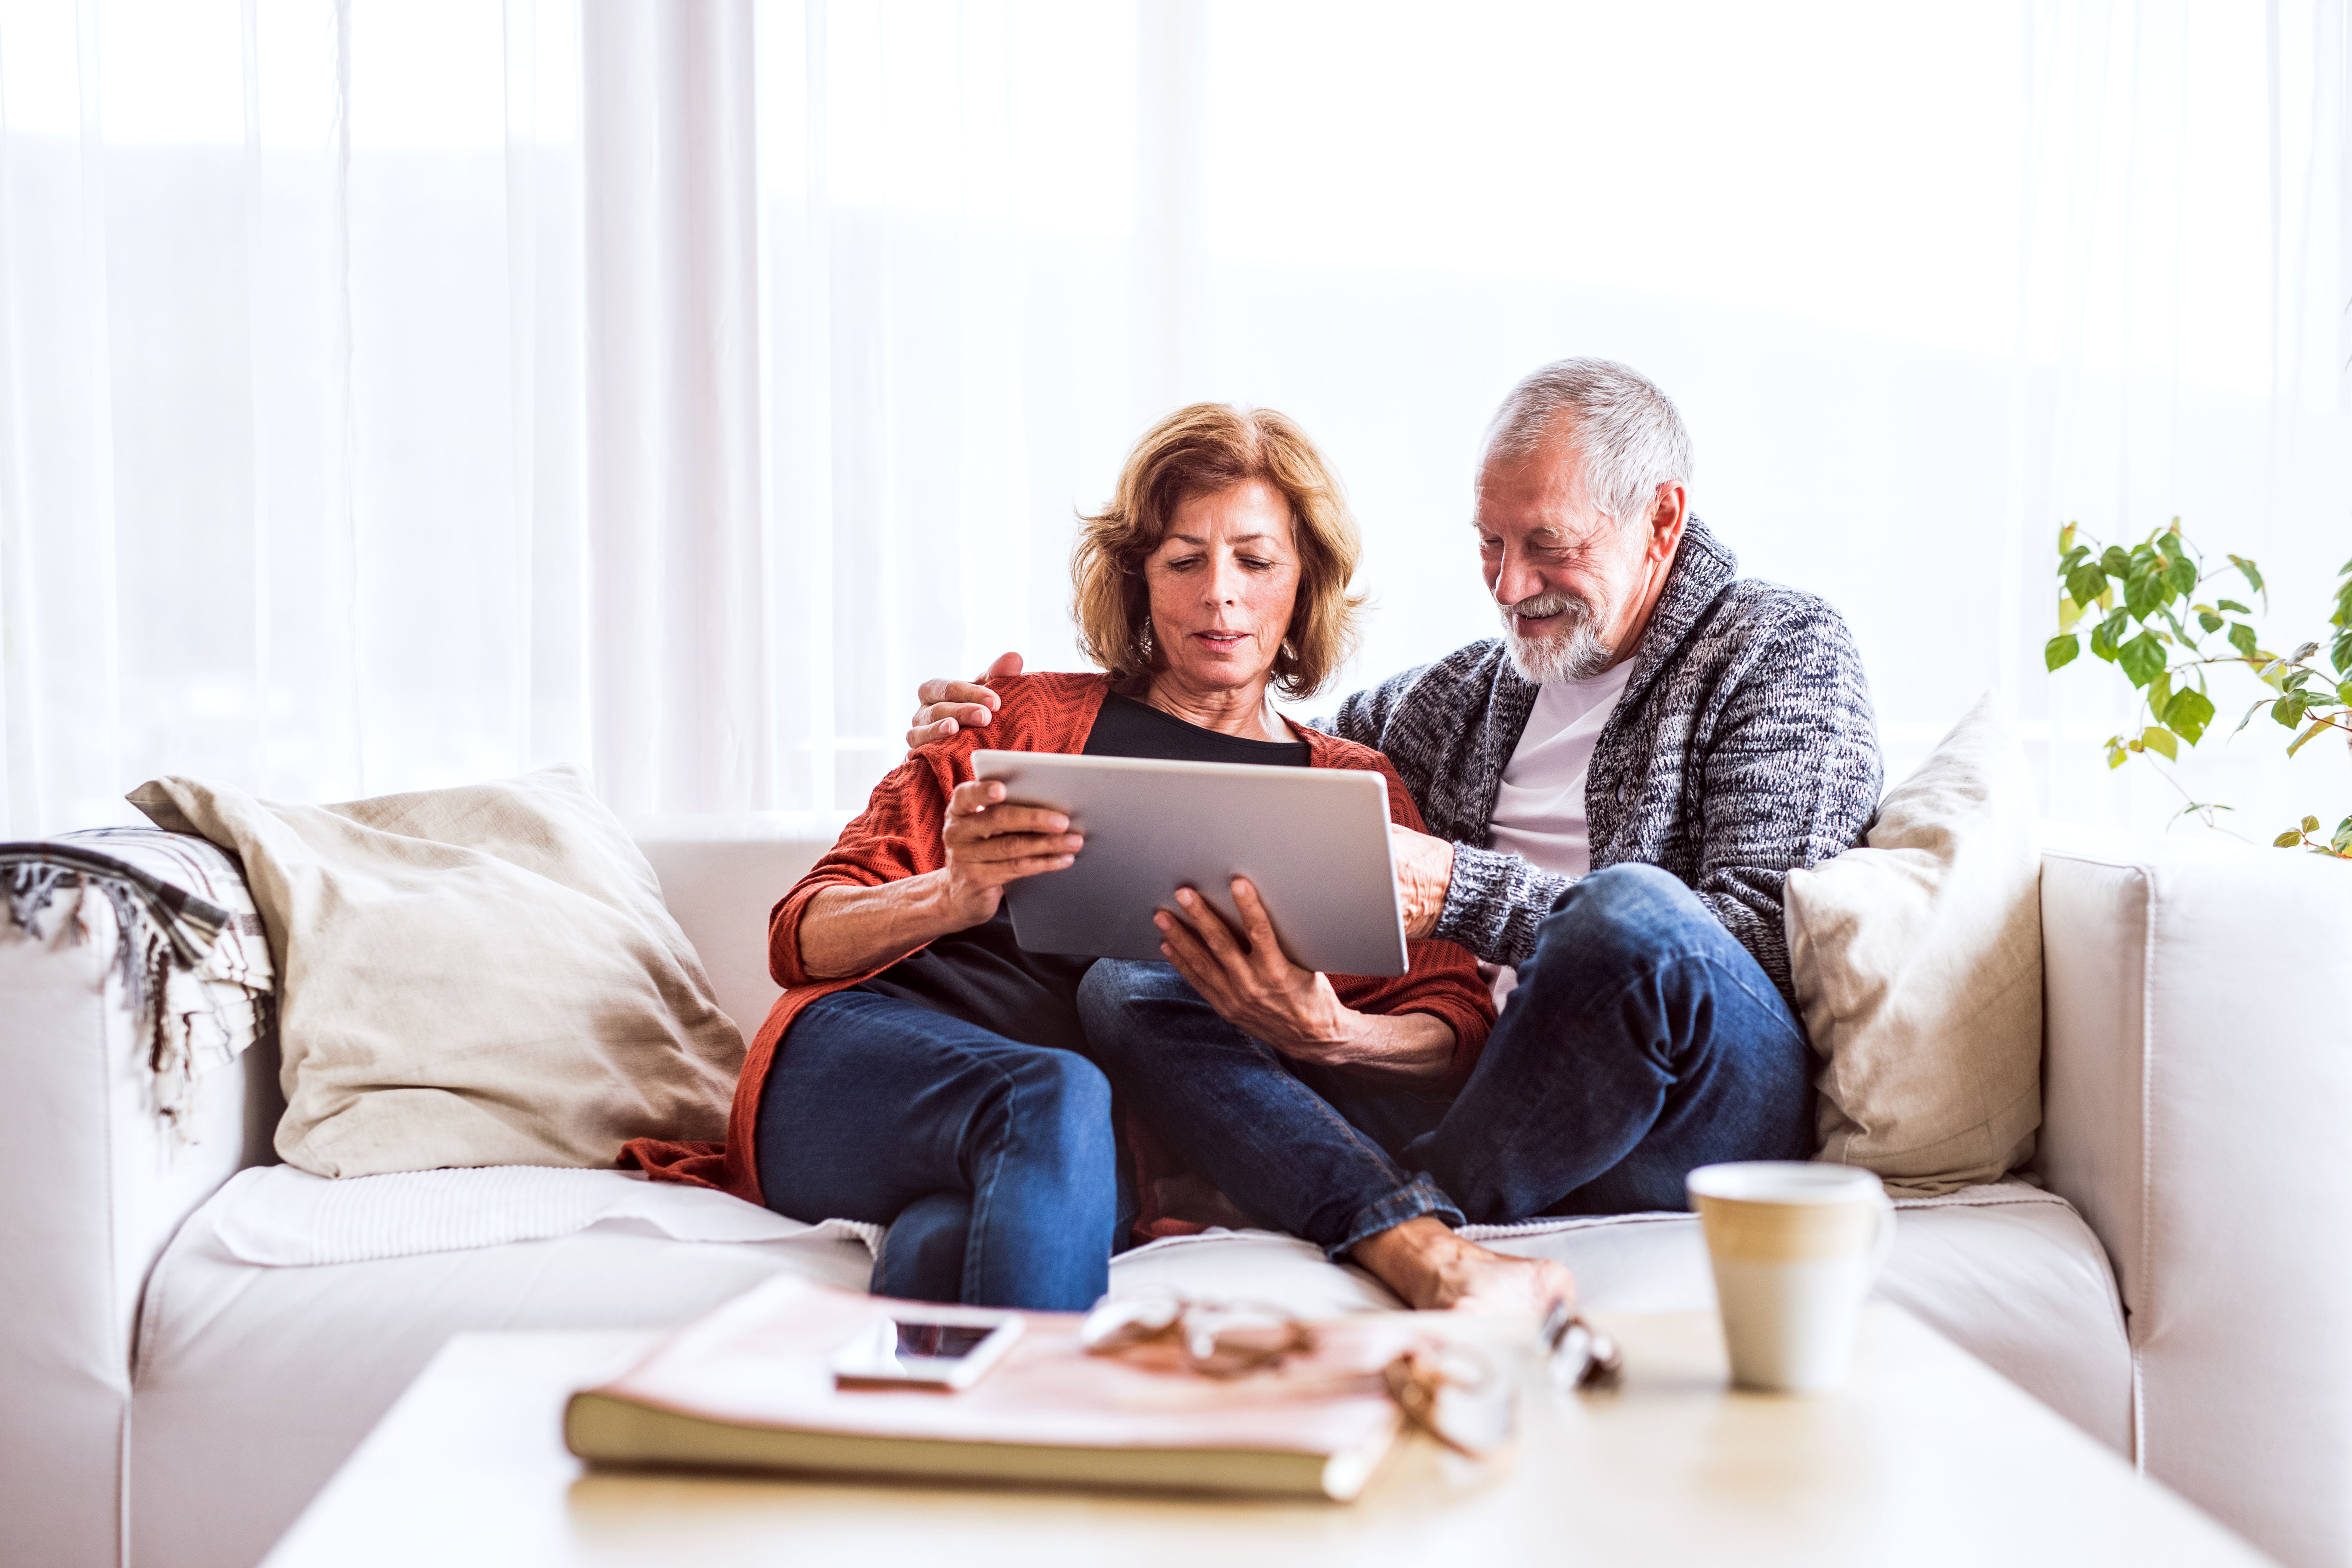 valuing-our-customers-image-older-couple-on-ipad.jpg